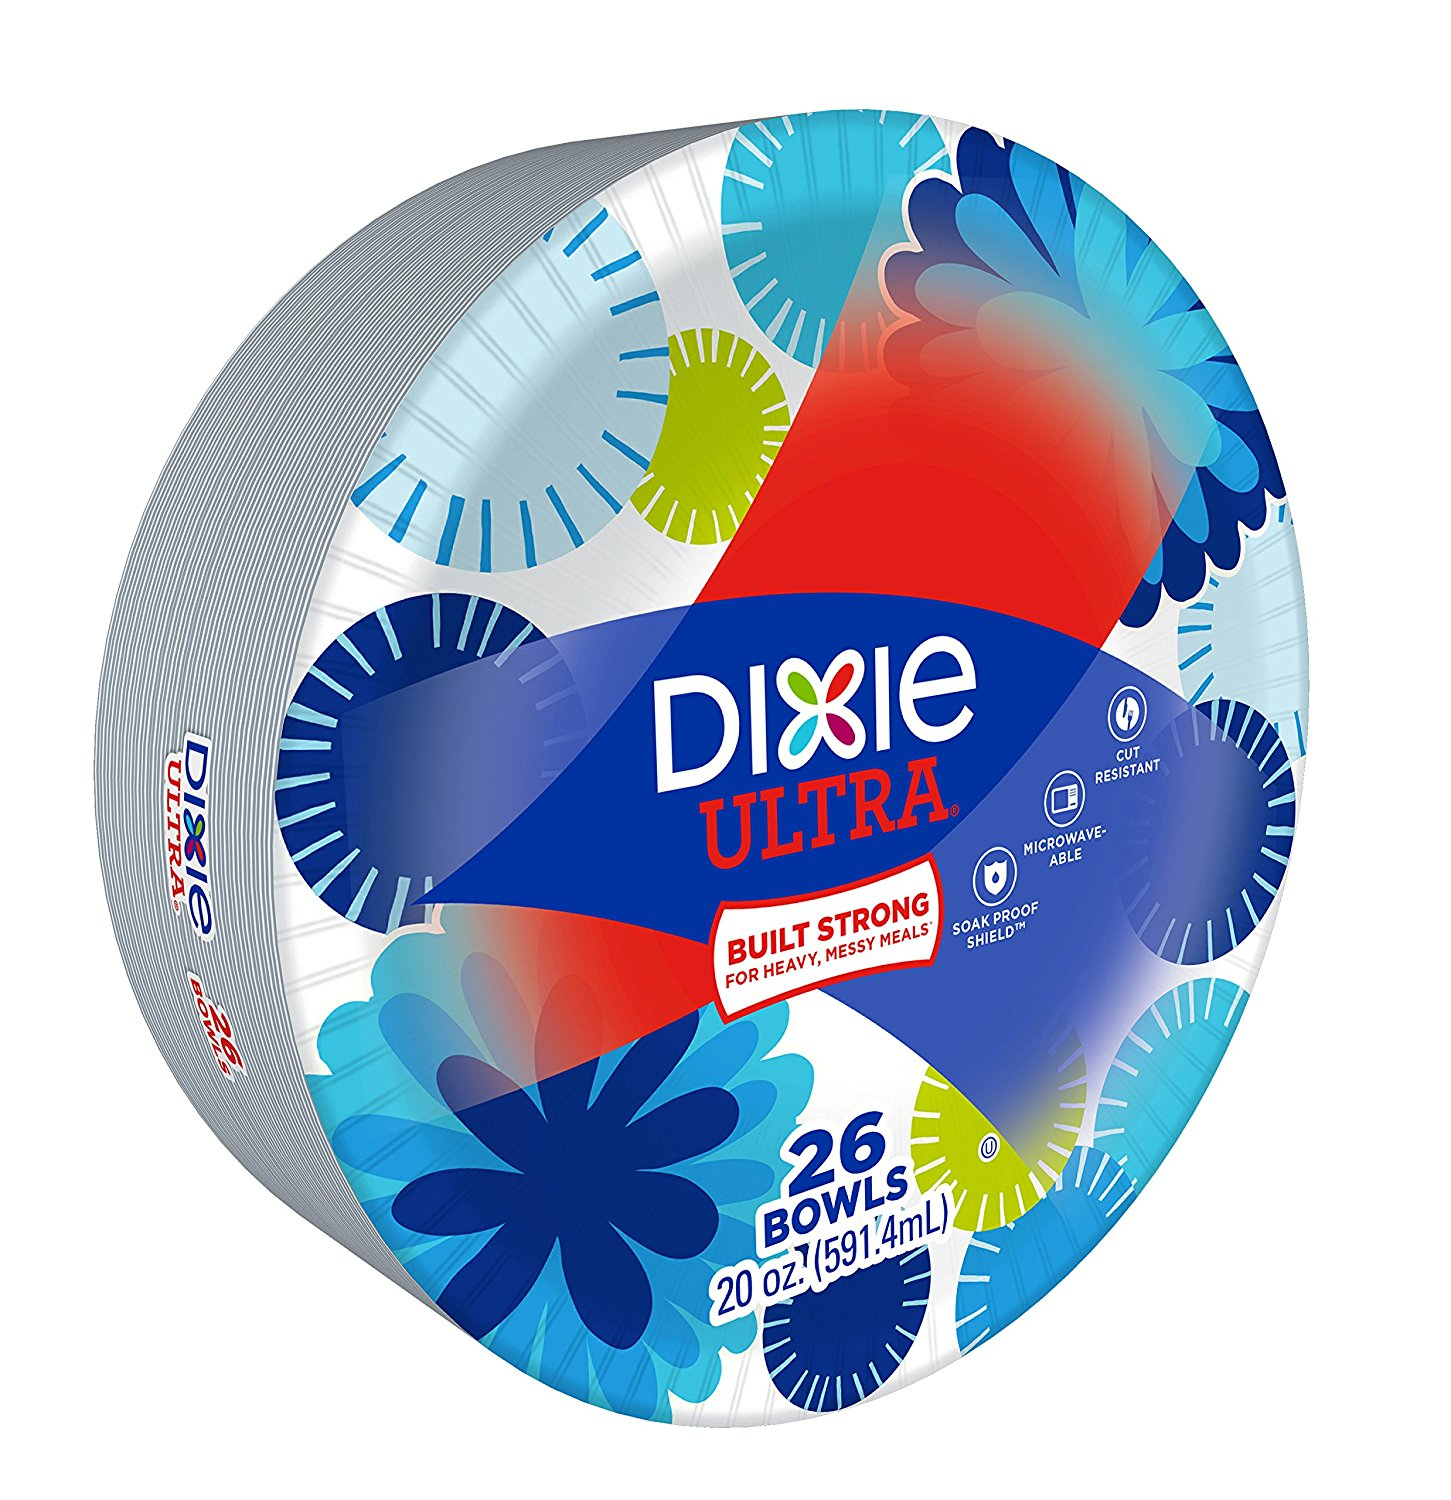 Dixie Ultra Paper Bowls 20 Ounces 156 Count. Dixie Ultra Paper ...  sc 1 st  iNeedTheBestOffer.com & Dixie Ultra Paper Bowls 20 Ounces 156 Count Best Offer Reviews